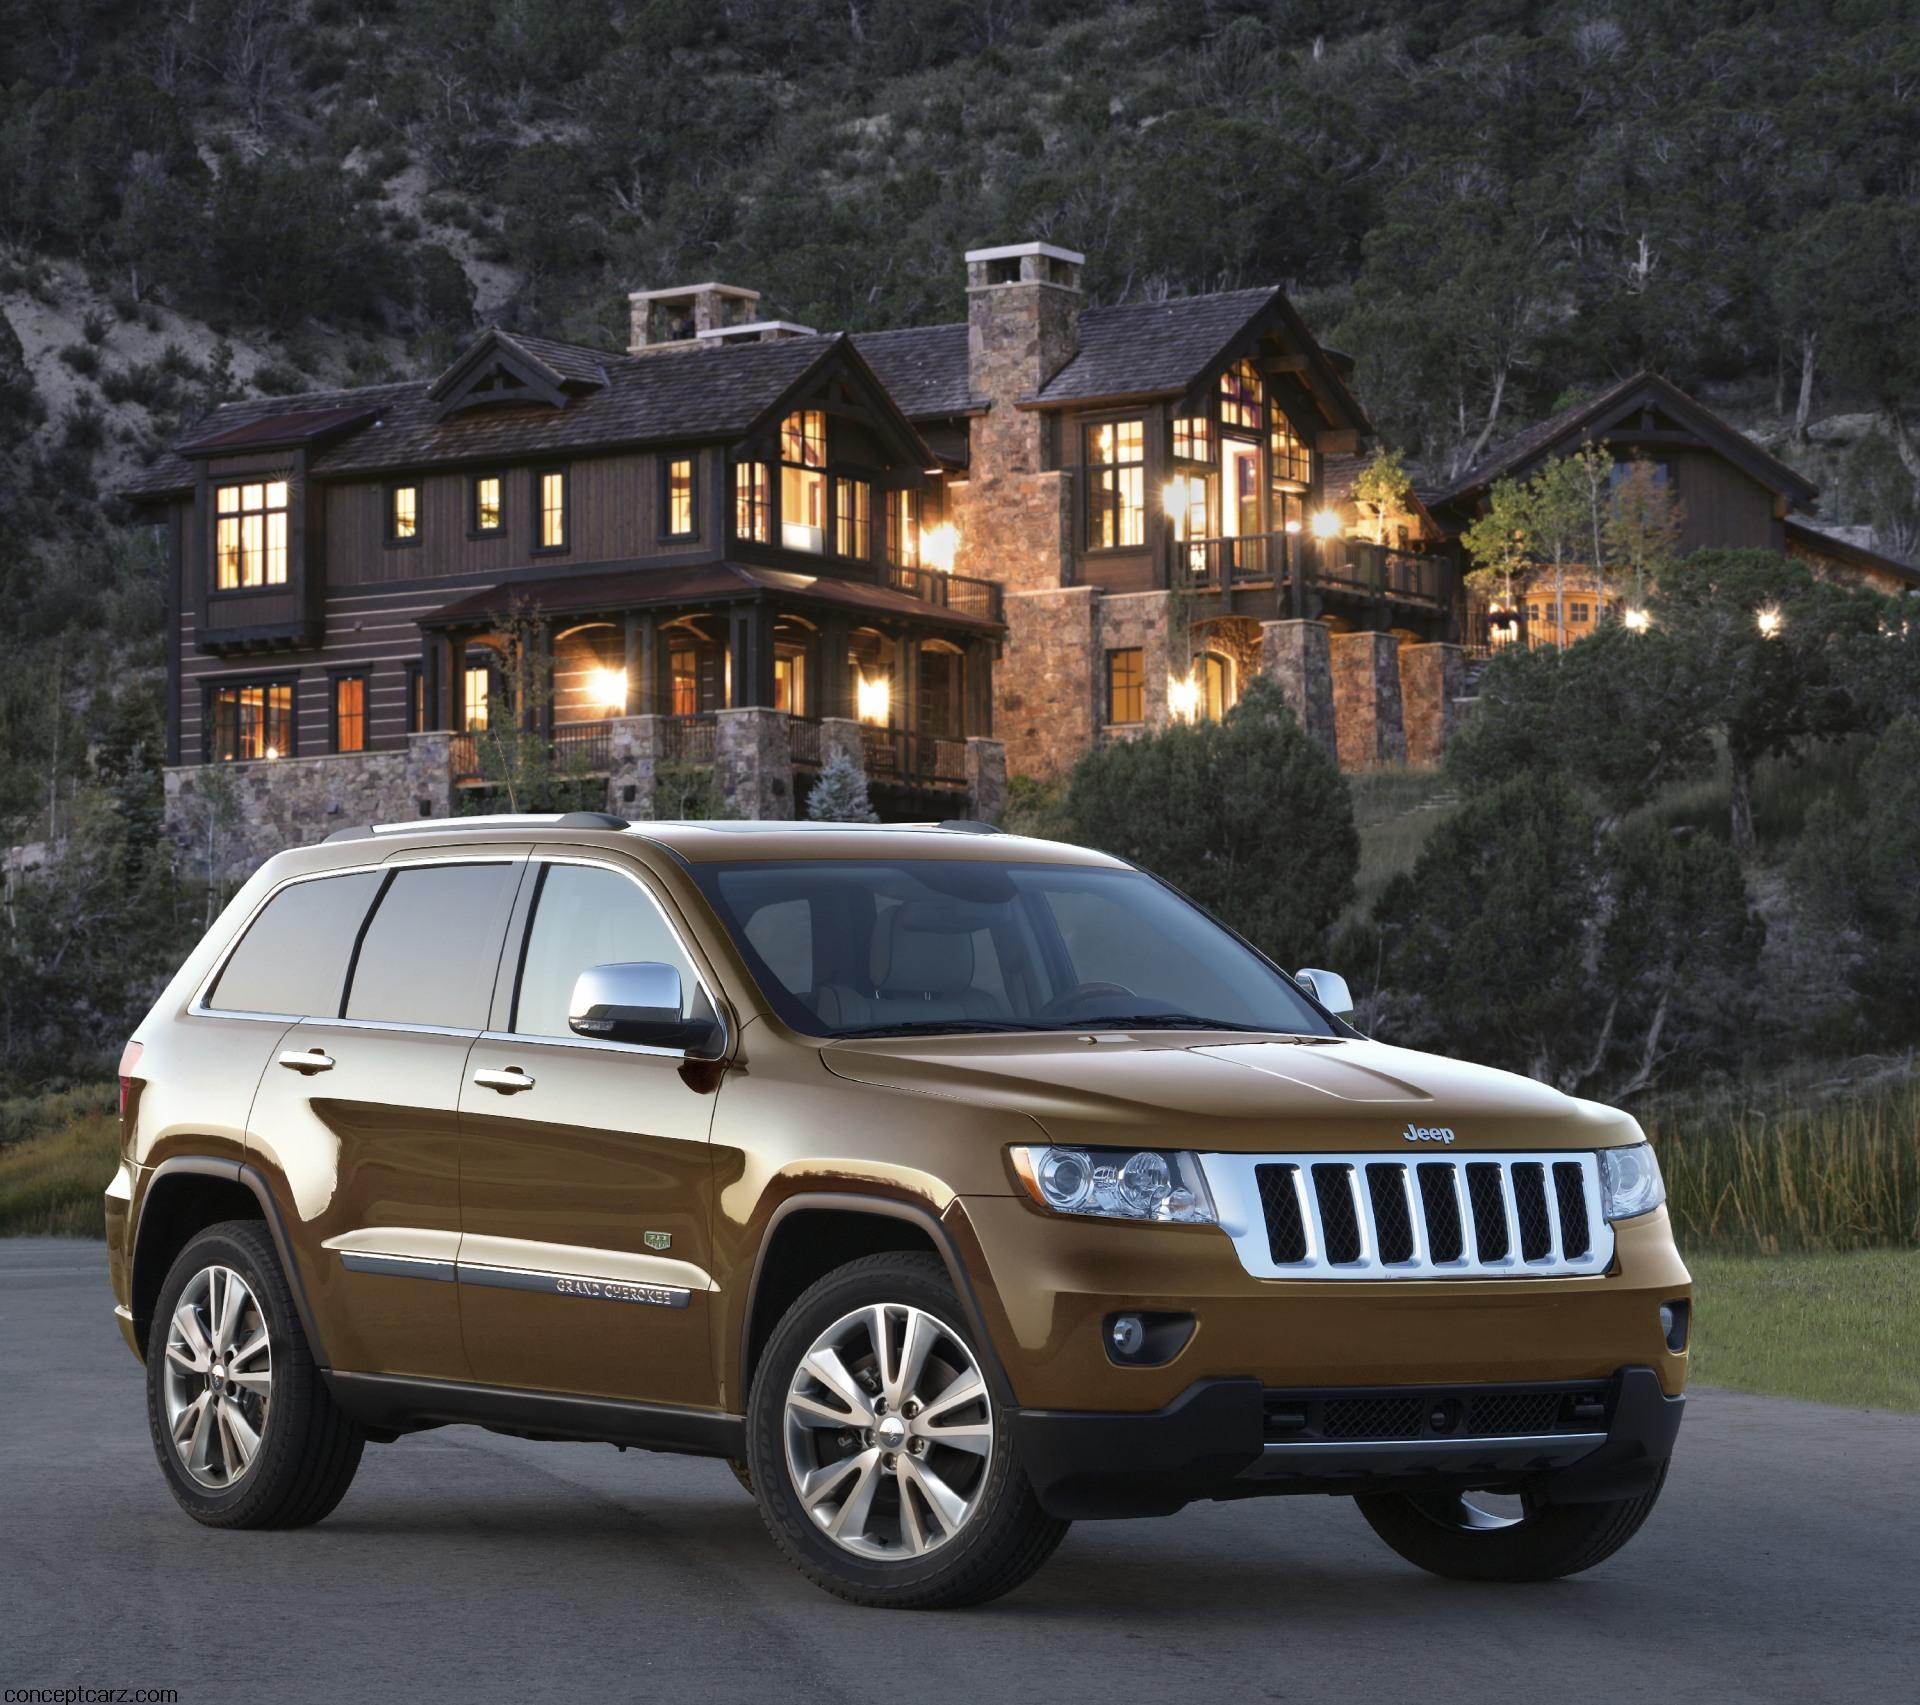 2011 Jeep Grand Cherokee 70th Anniversary Edition News and Information